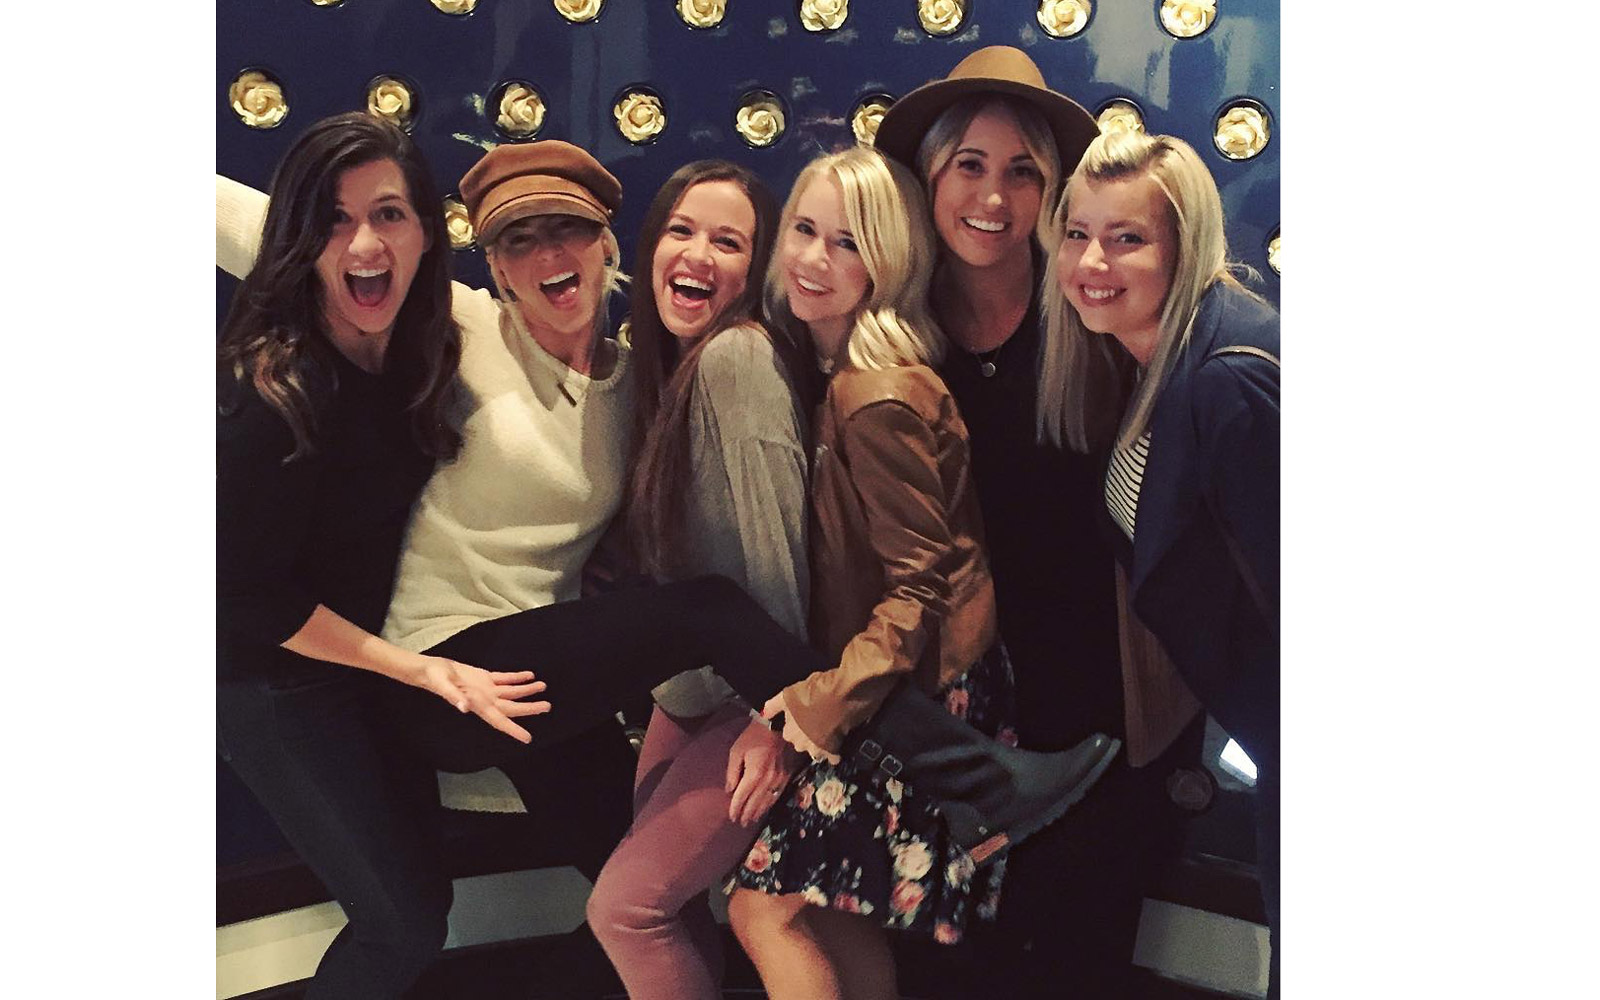 Julianne Hough taking a picture with her friends